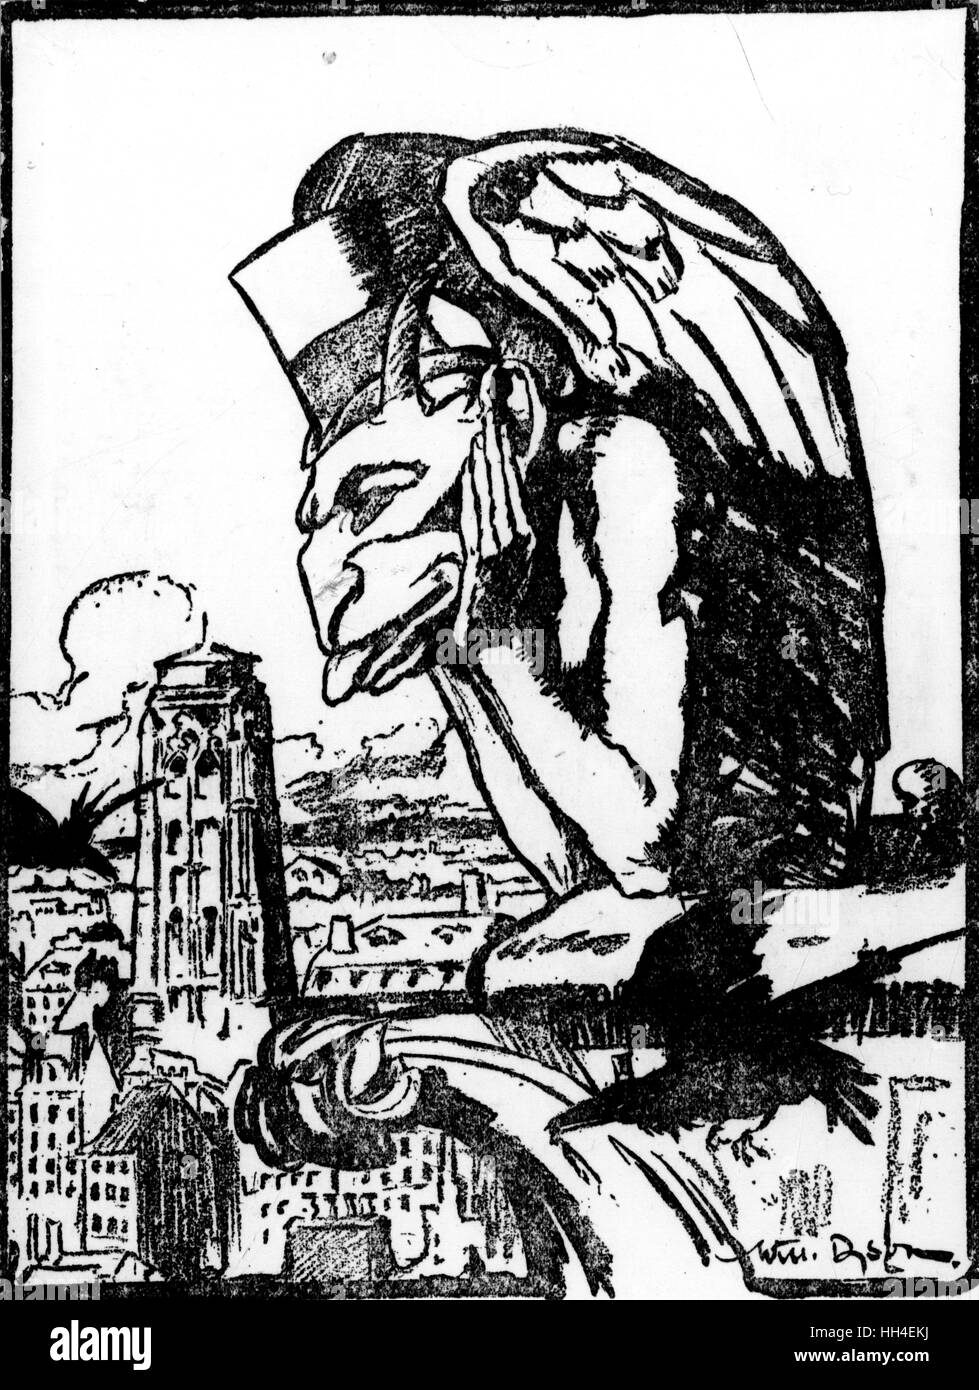 WW1 - A illustration of a giant gargoyle sitting of the city of Paris, as if waiting on the news from the peace - Stock Image